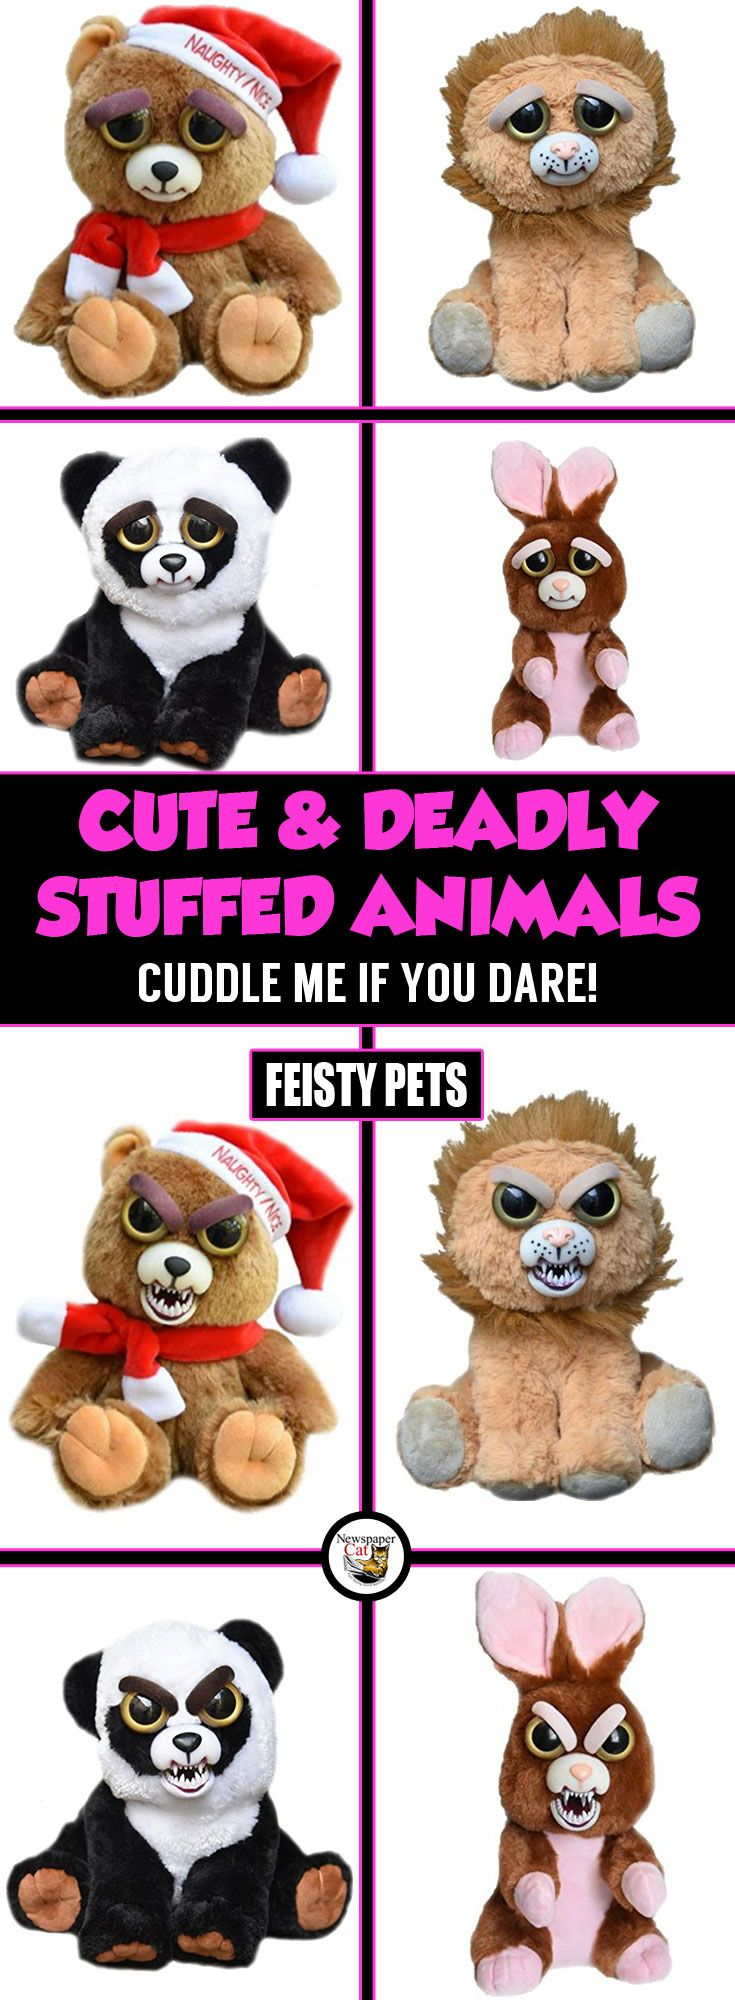 Feisty Pets Review Utterly Adorable Stuffed Animal Plushes That Will Scare The Bejesus Out Of You Cute Stuffed Animals Animals Gifts For Pet Lovers